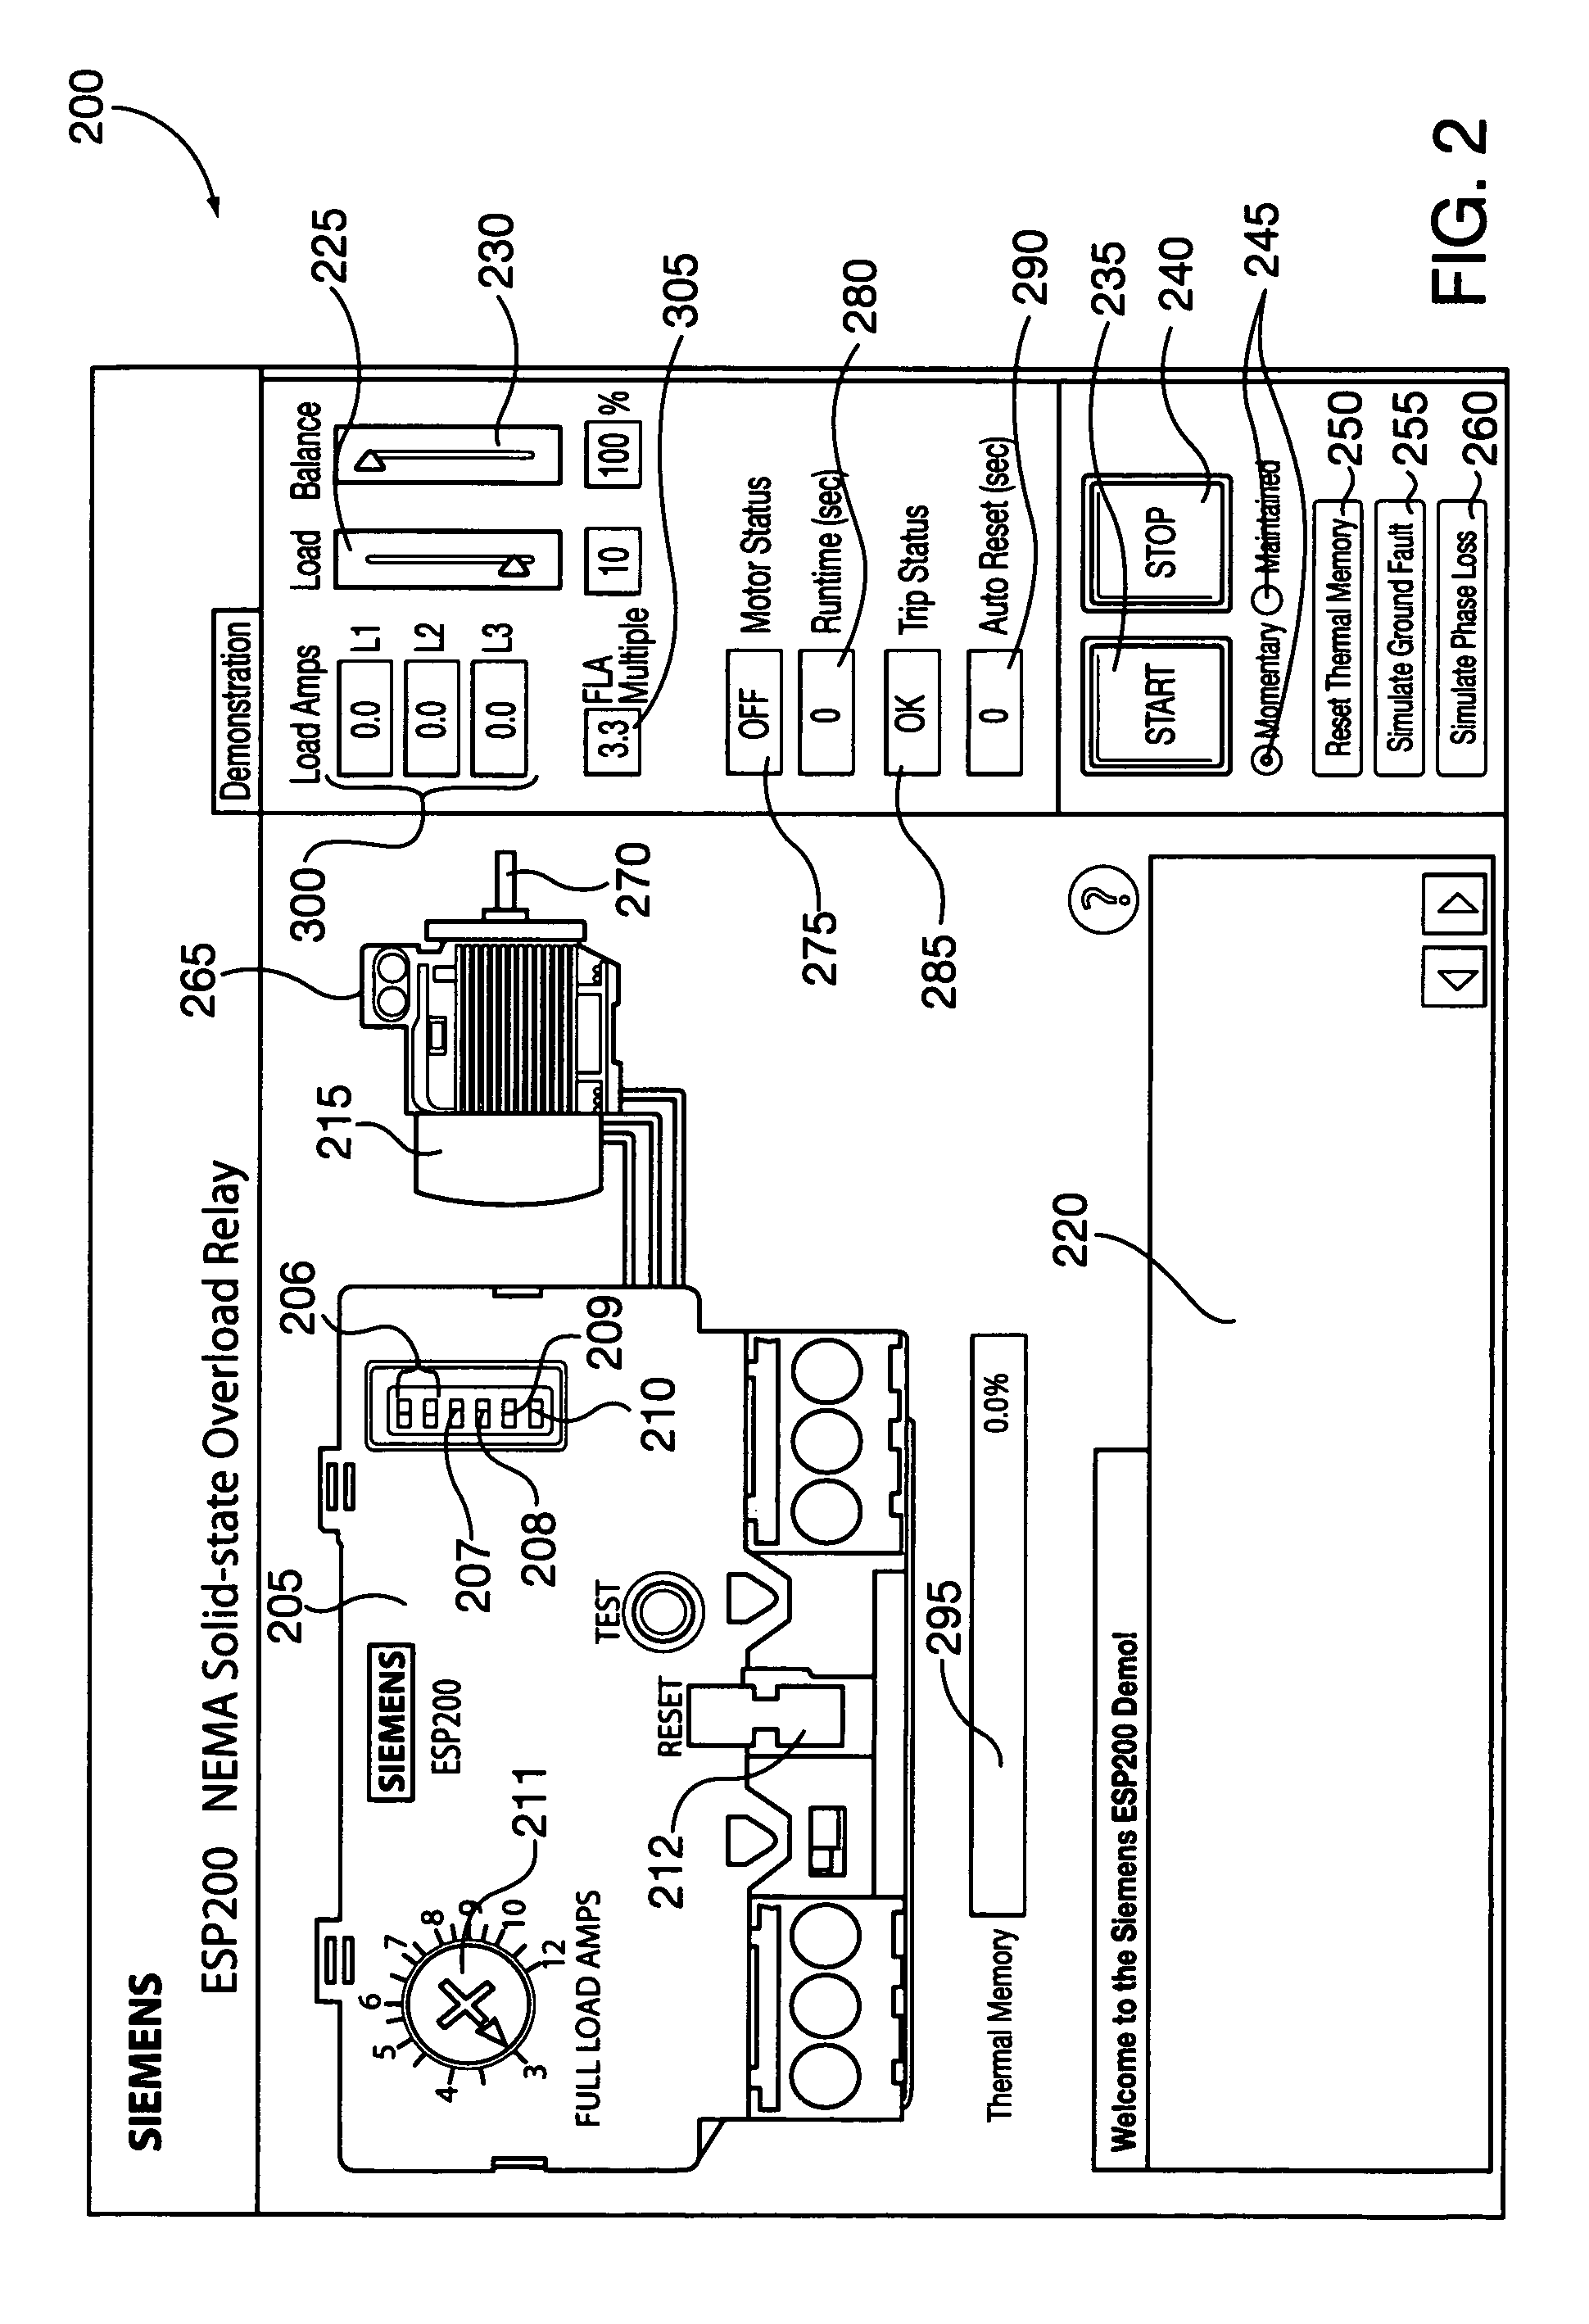 patent us8255200 - circuit protection and control device simulator